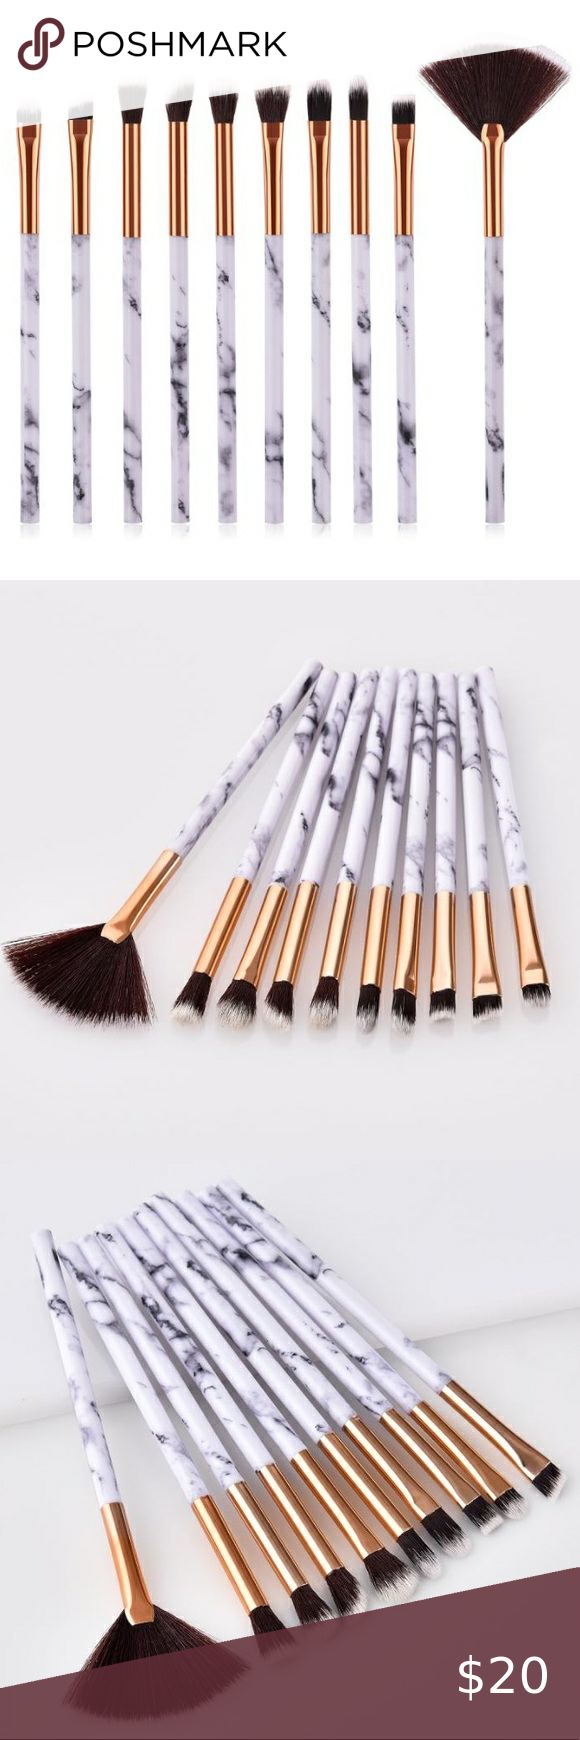 New 10 Piece Marble Brushes Set In 2020 Brush Set Things To Sell Makeup Tools Brushes